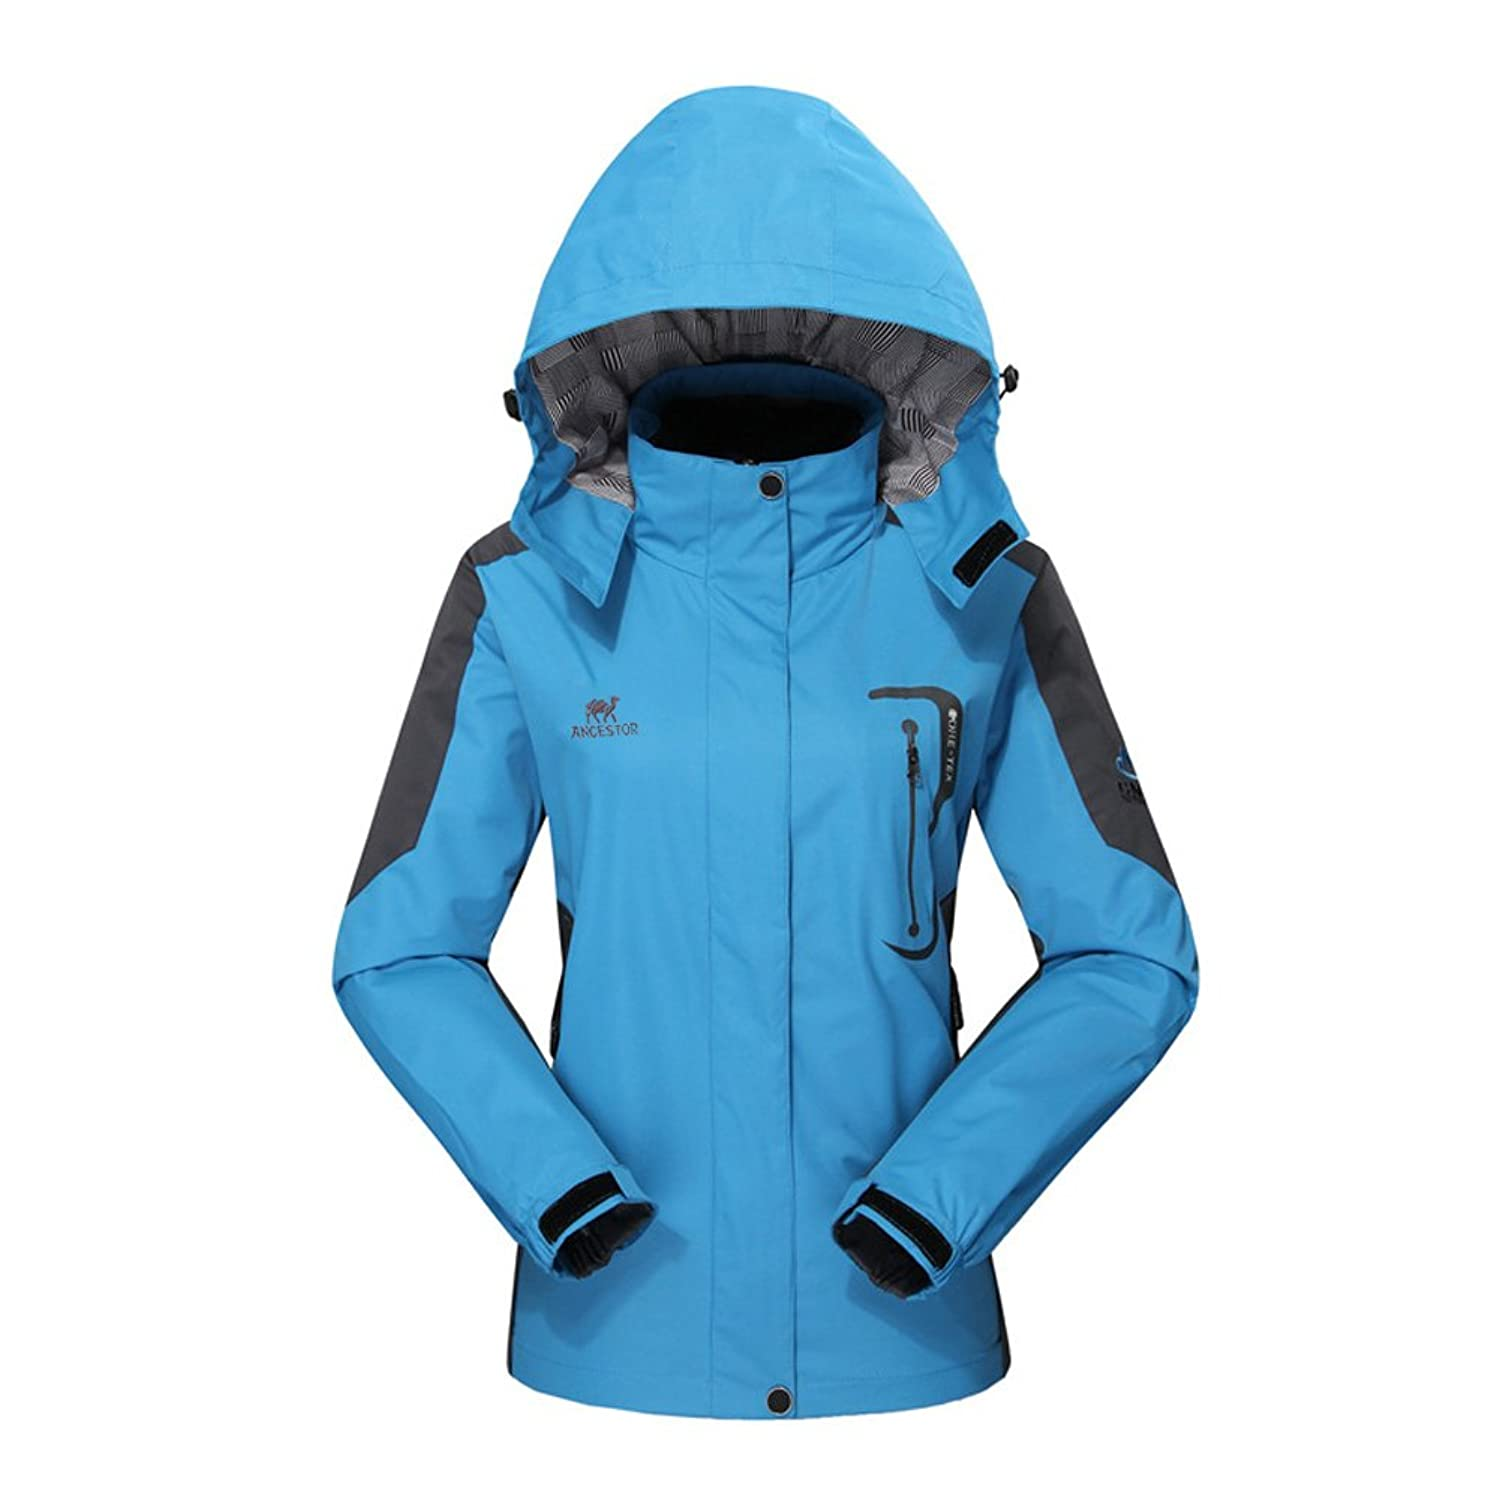 Amazon.com: Diamond Candy Hooded Softshell Waterproof Jacket